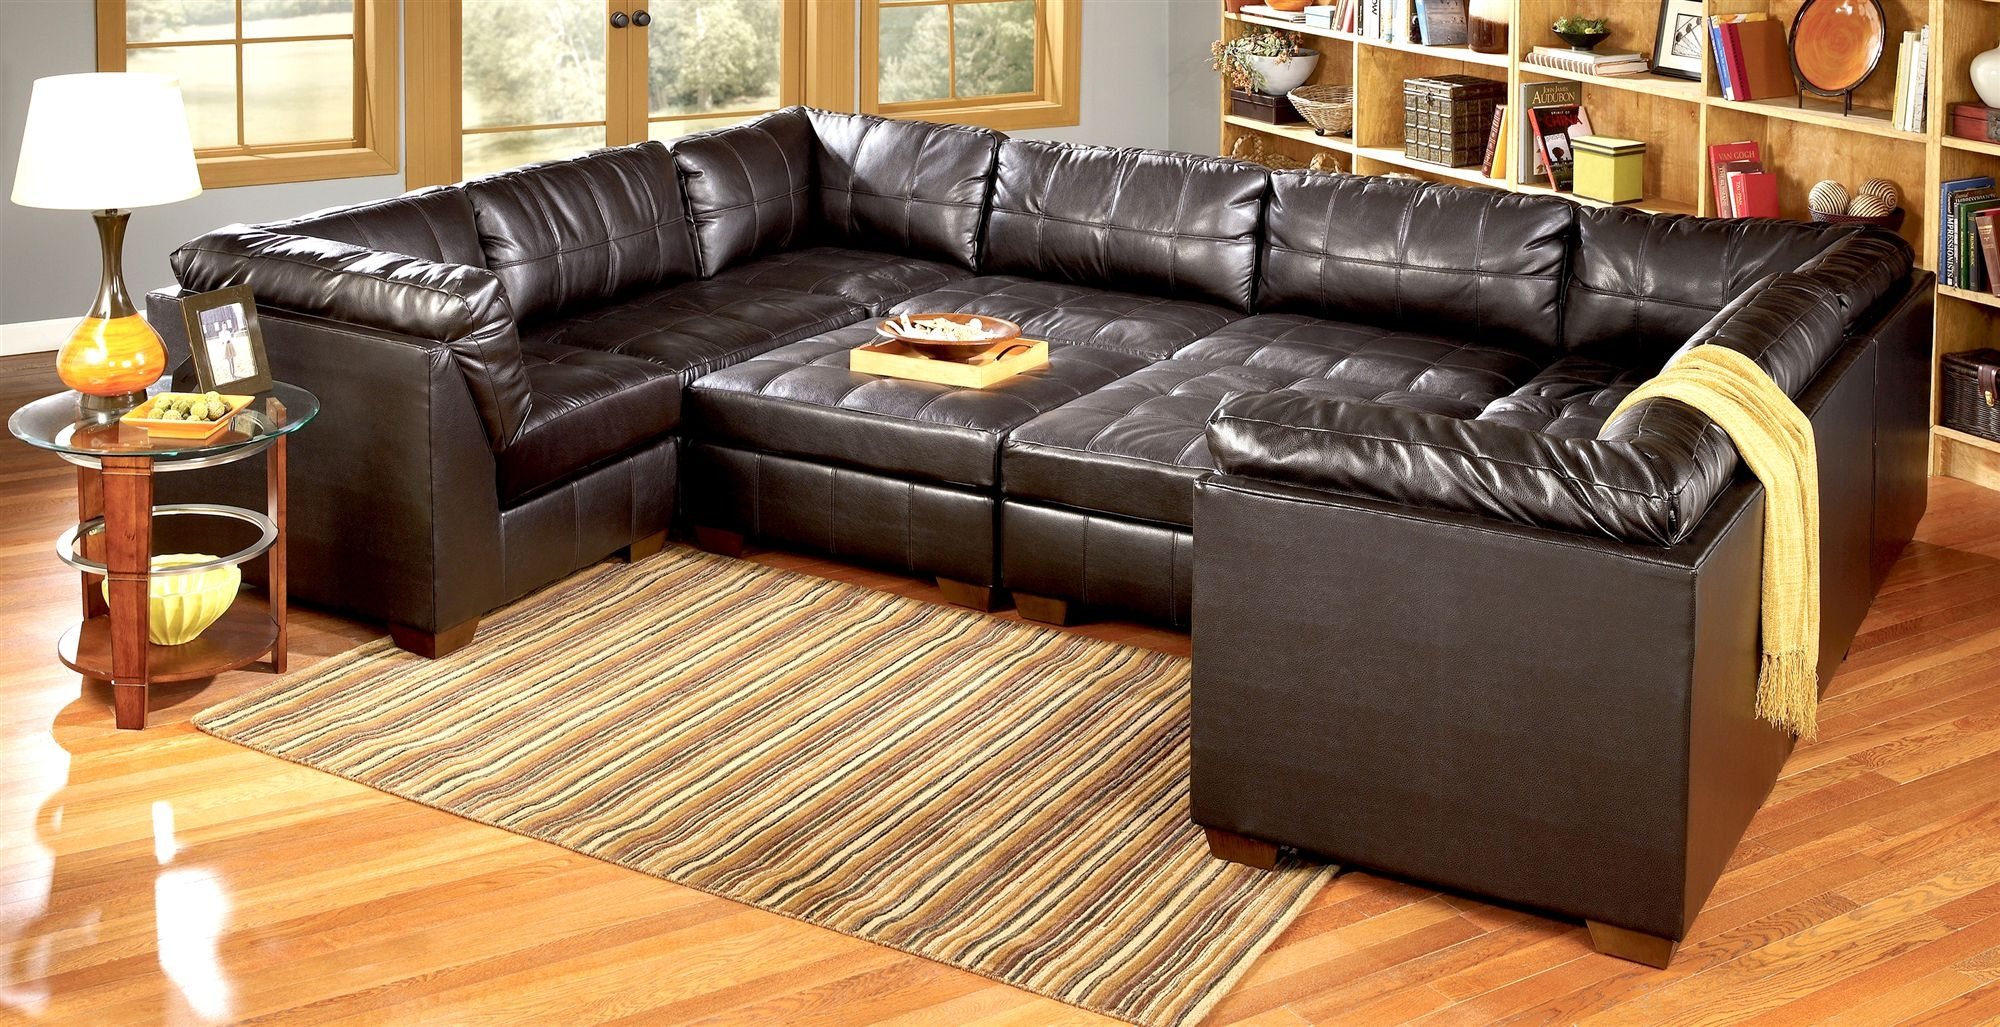 harper fabric 6 piece modular sectional sofa comfortable bed for daily use canada 15 collection of ideas